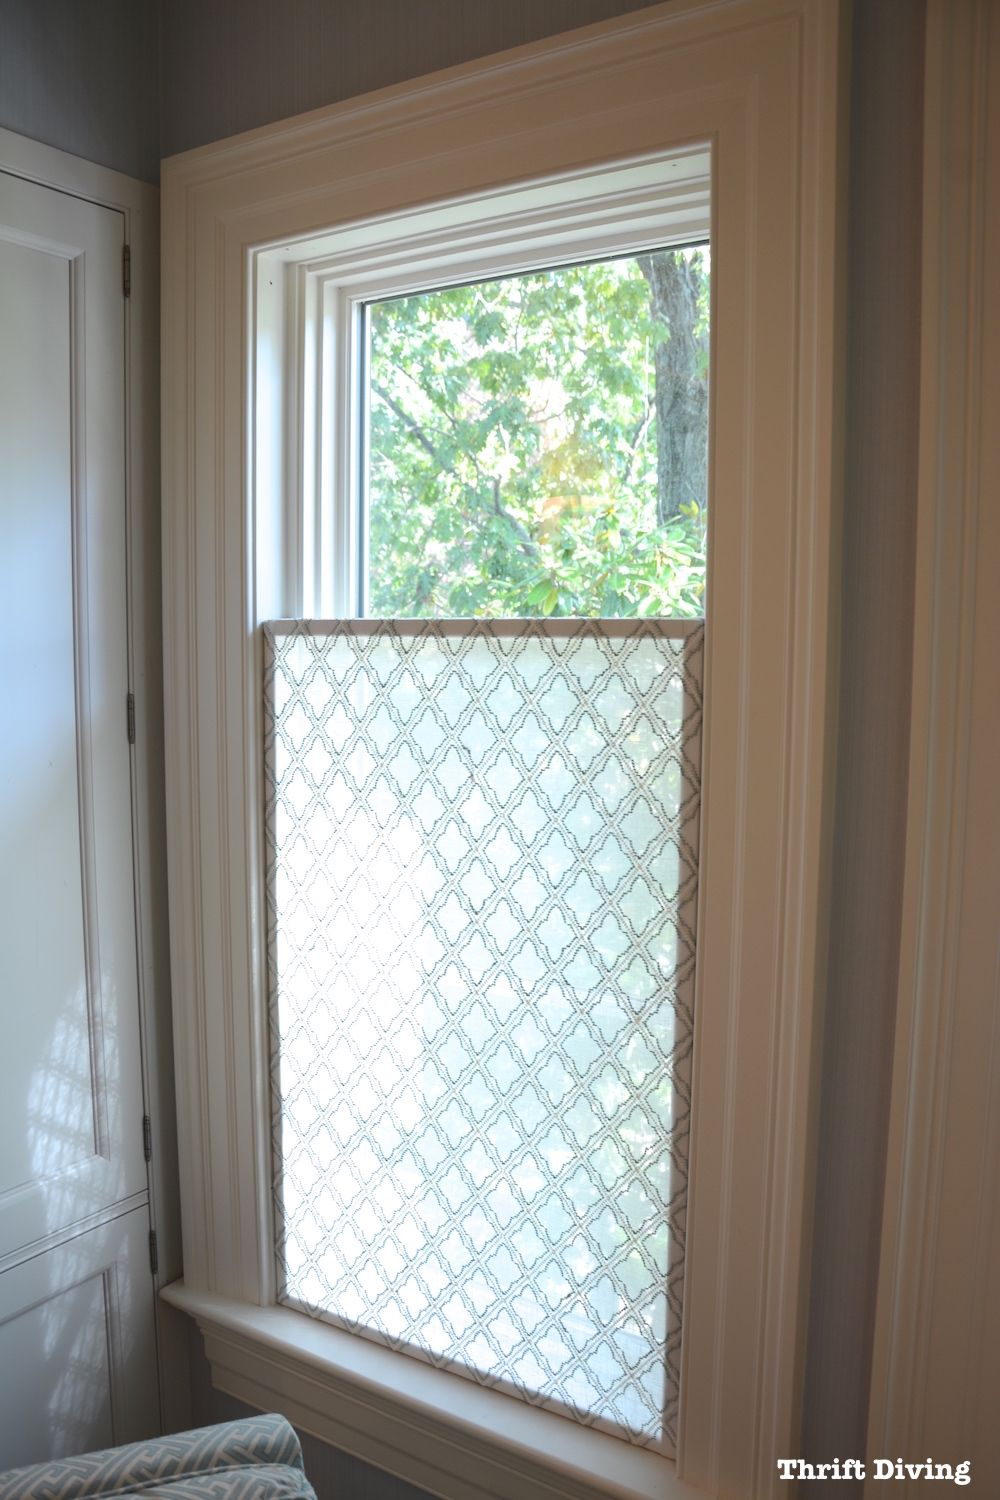 Merveilleux DC Design House Privacy Screen For Bathroom Window